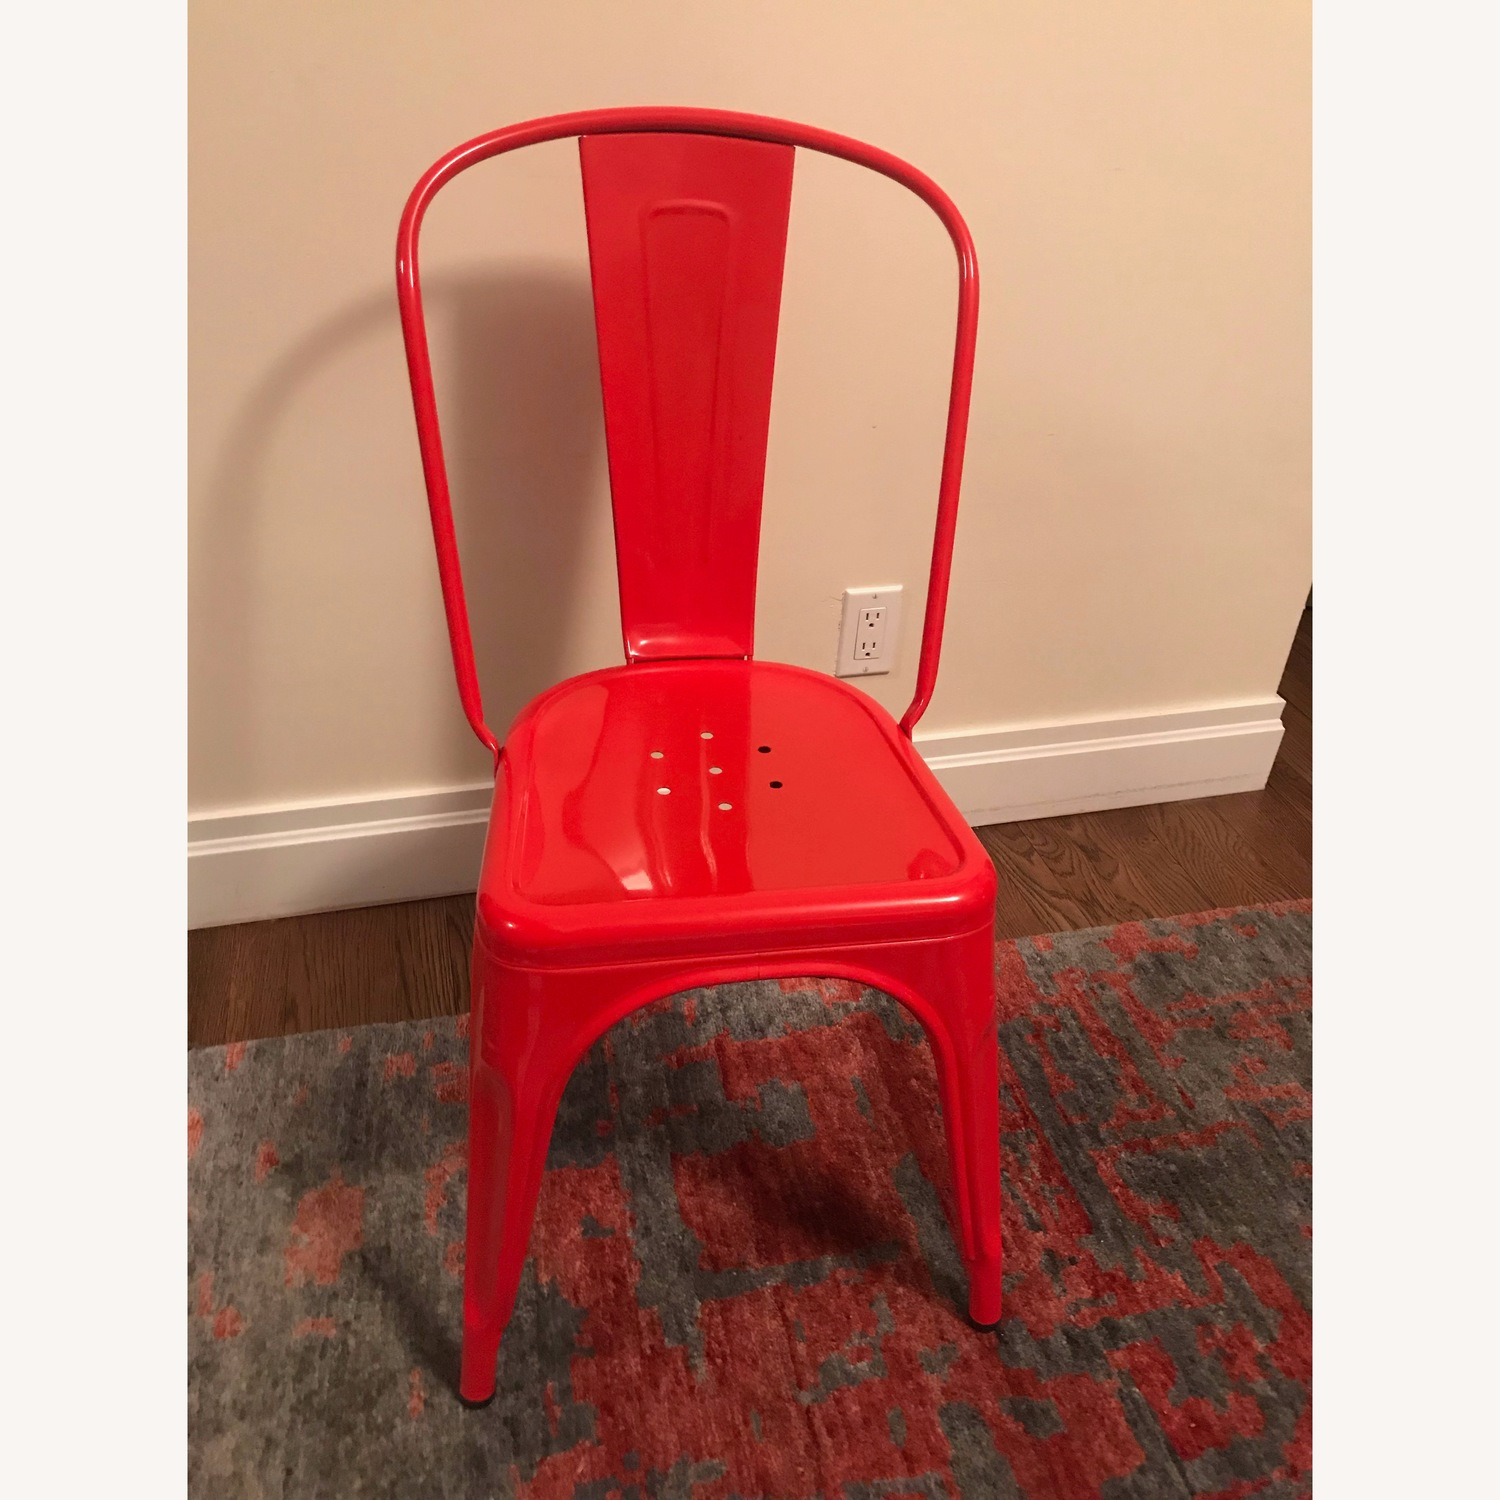 Antiquaire Tolix Red Dining Chairs